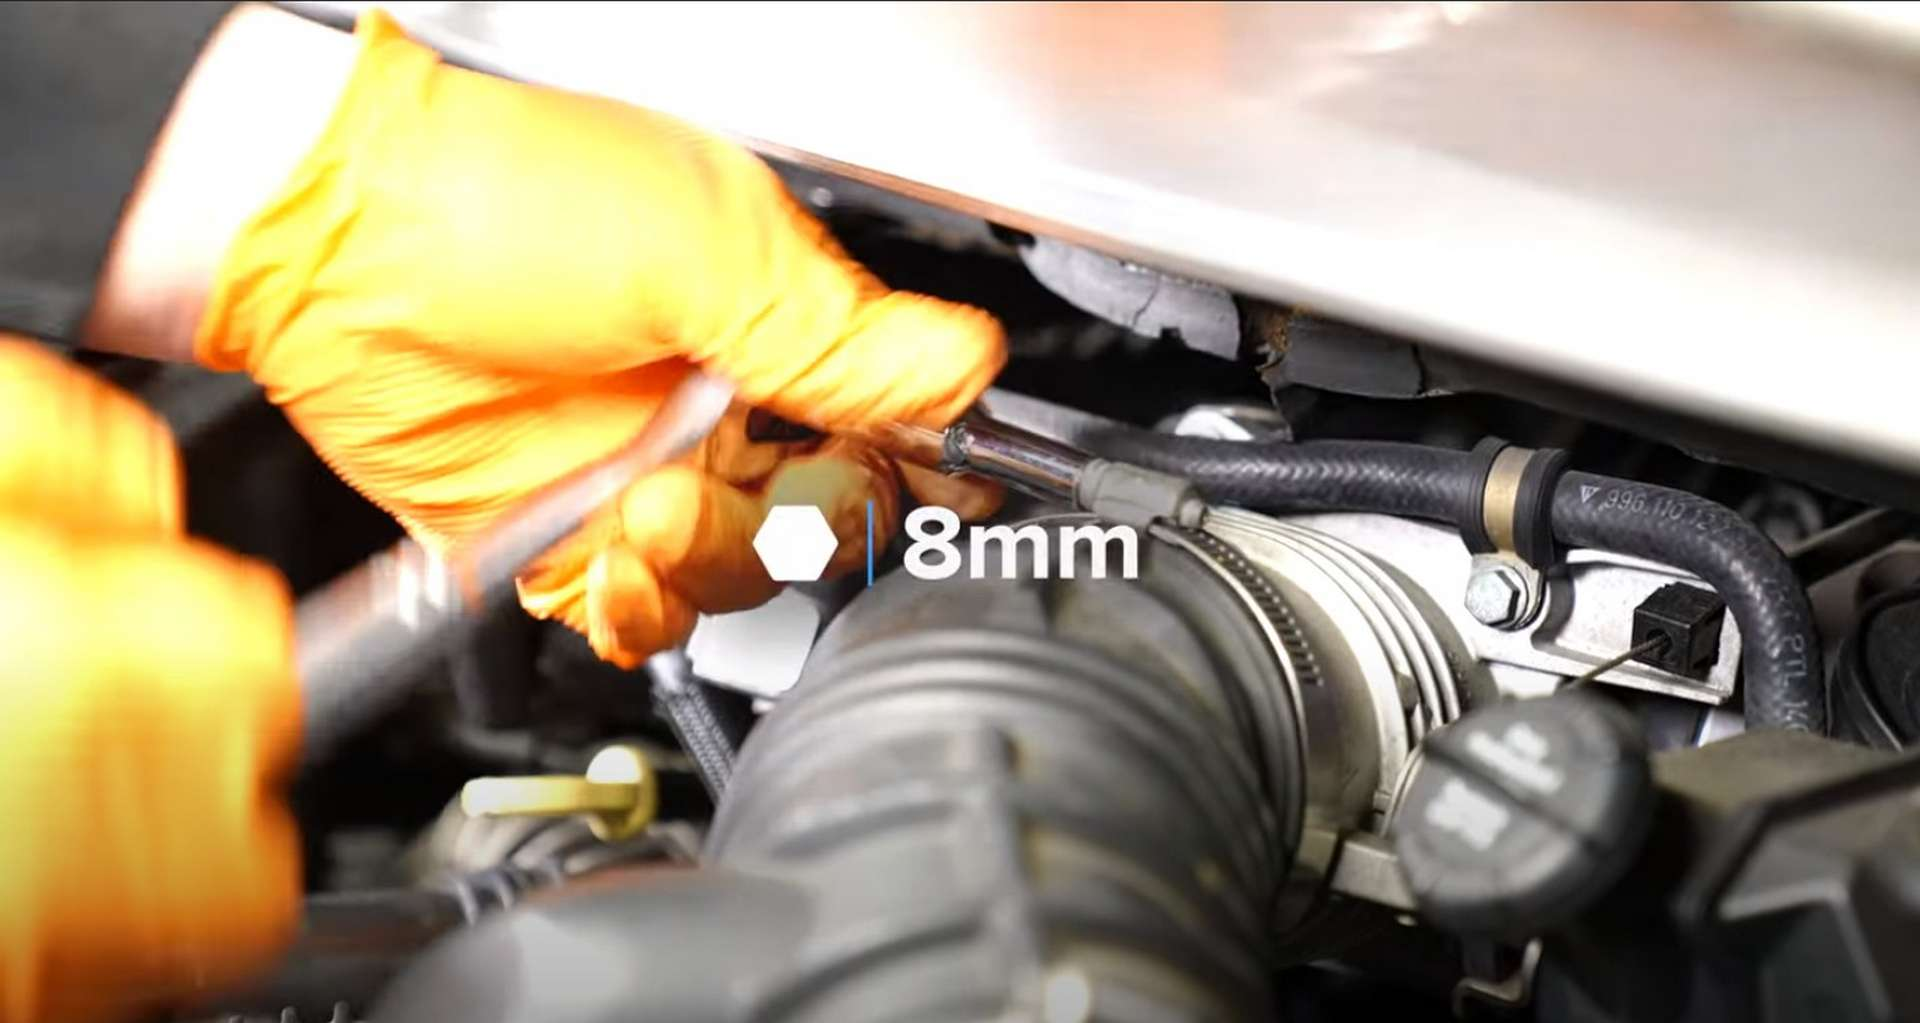 Porsche 996 Accessory Belt Drive System Replacementloosening the intake hose clamp on the throttle body